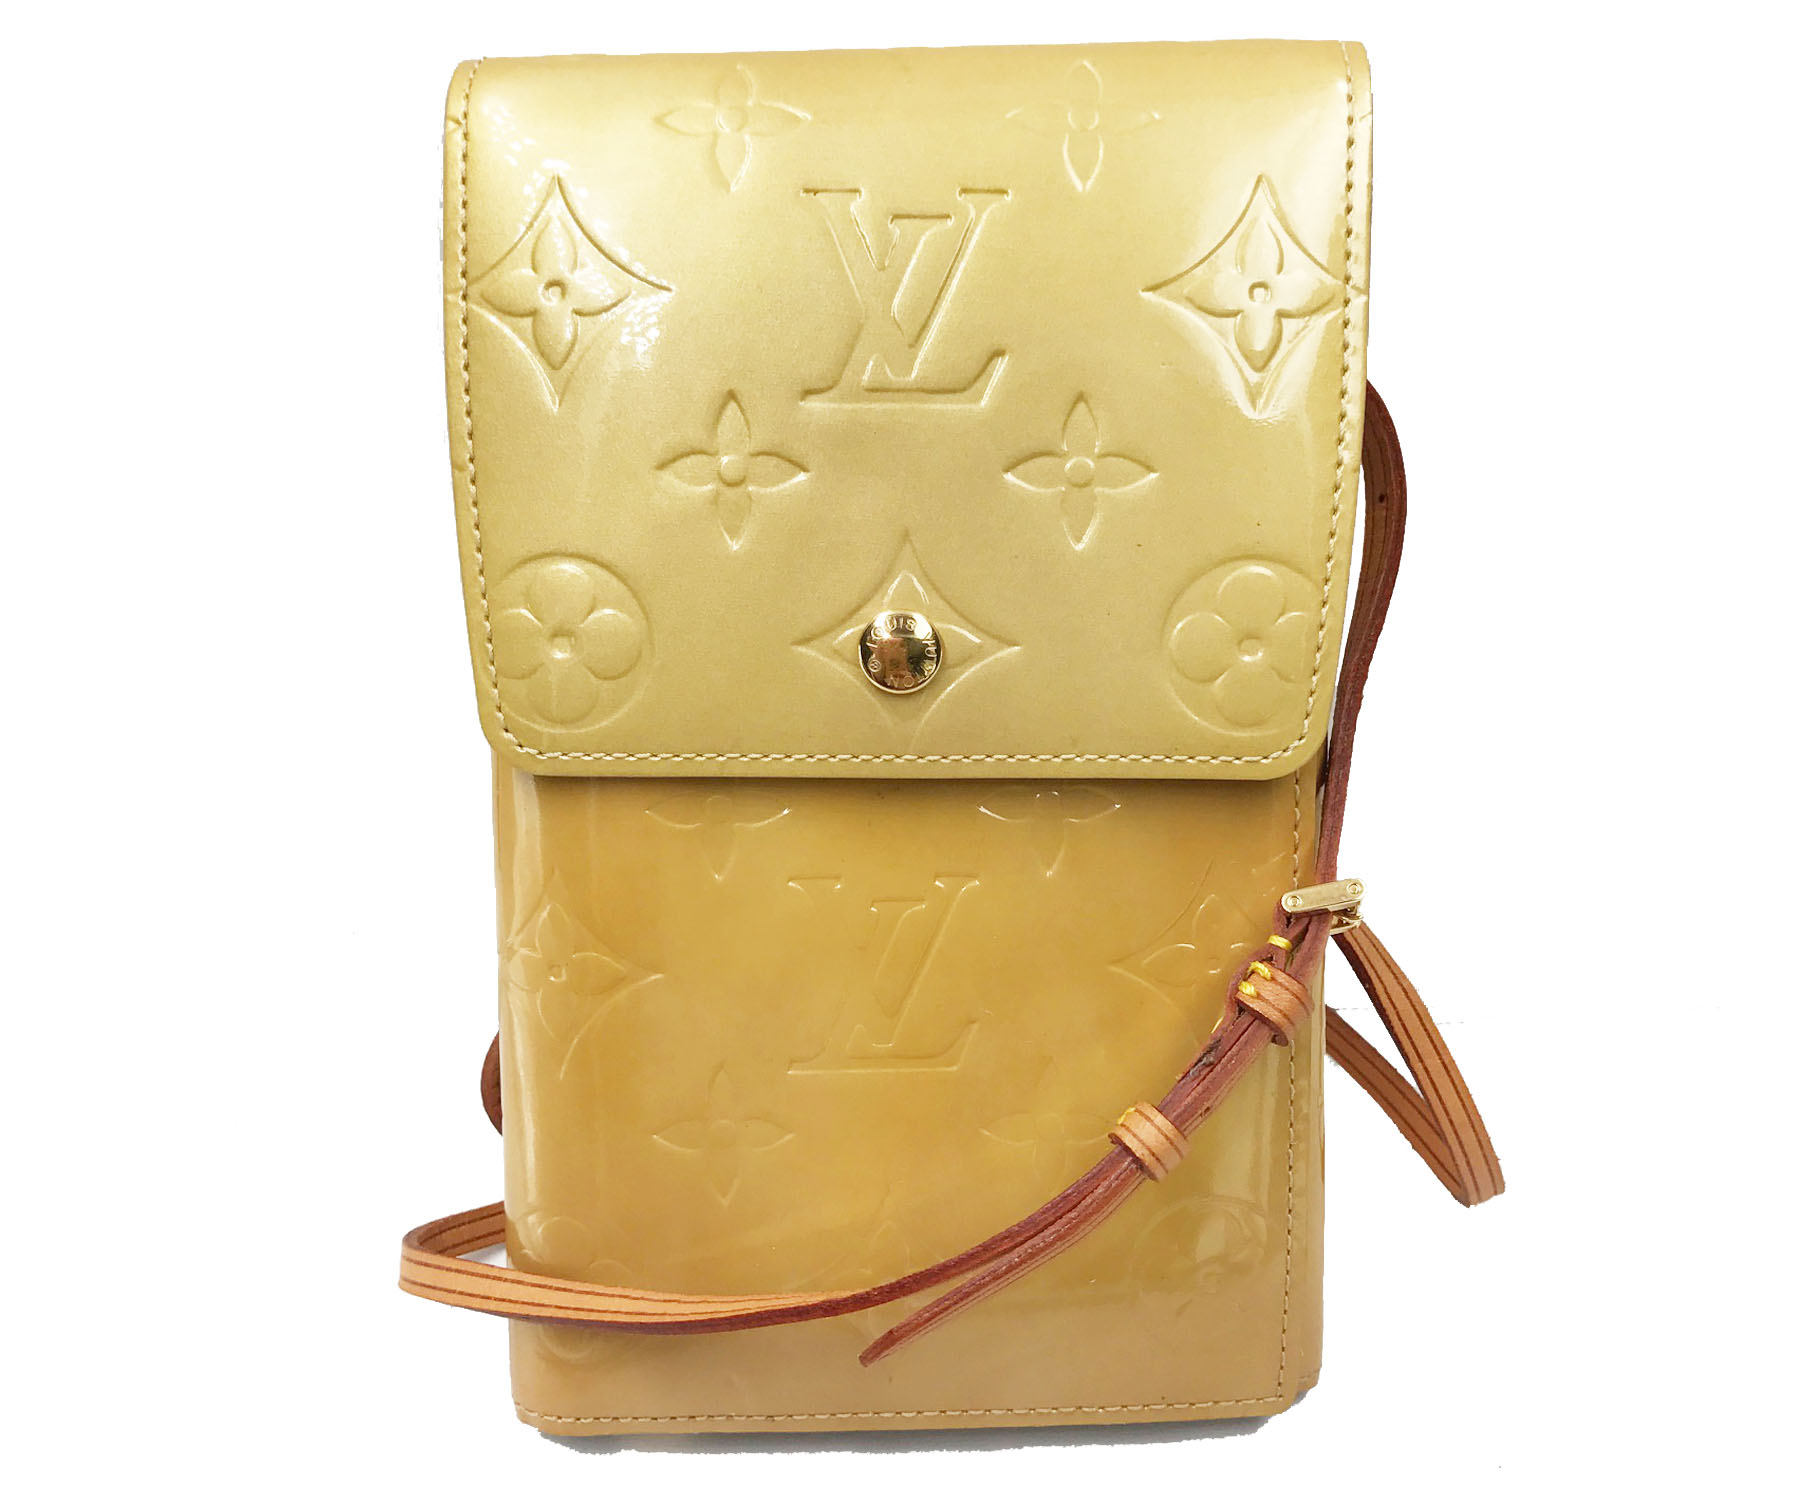 louis vuitton vernis beige passport wallet crossbody bag